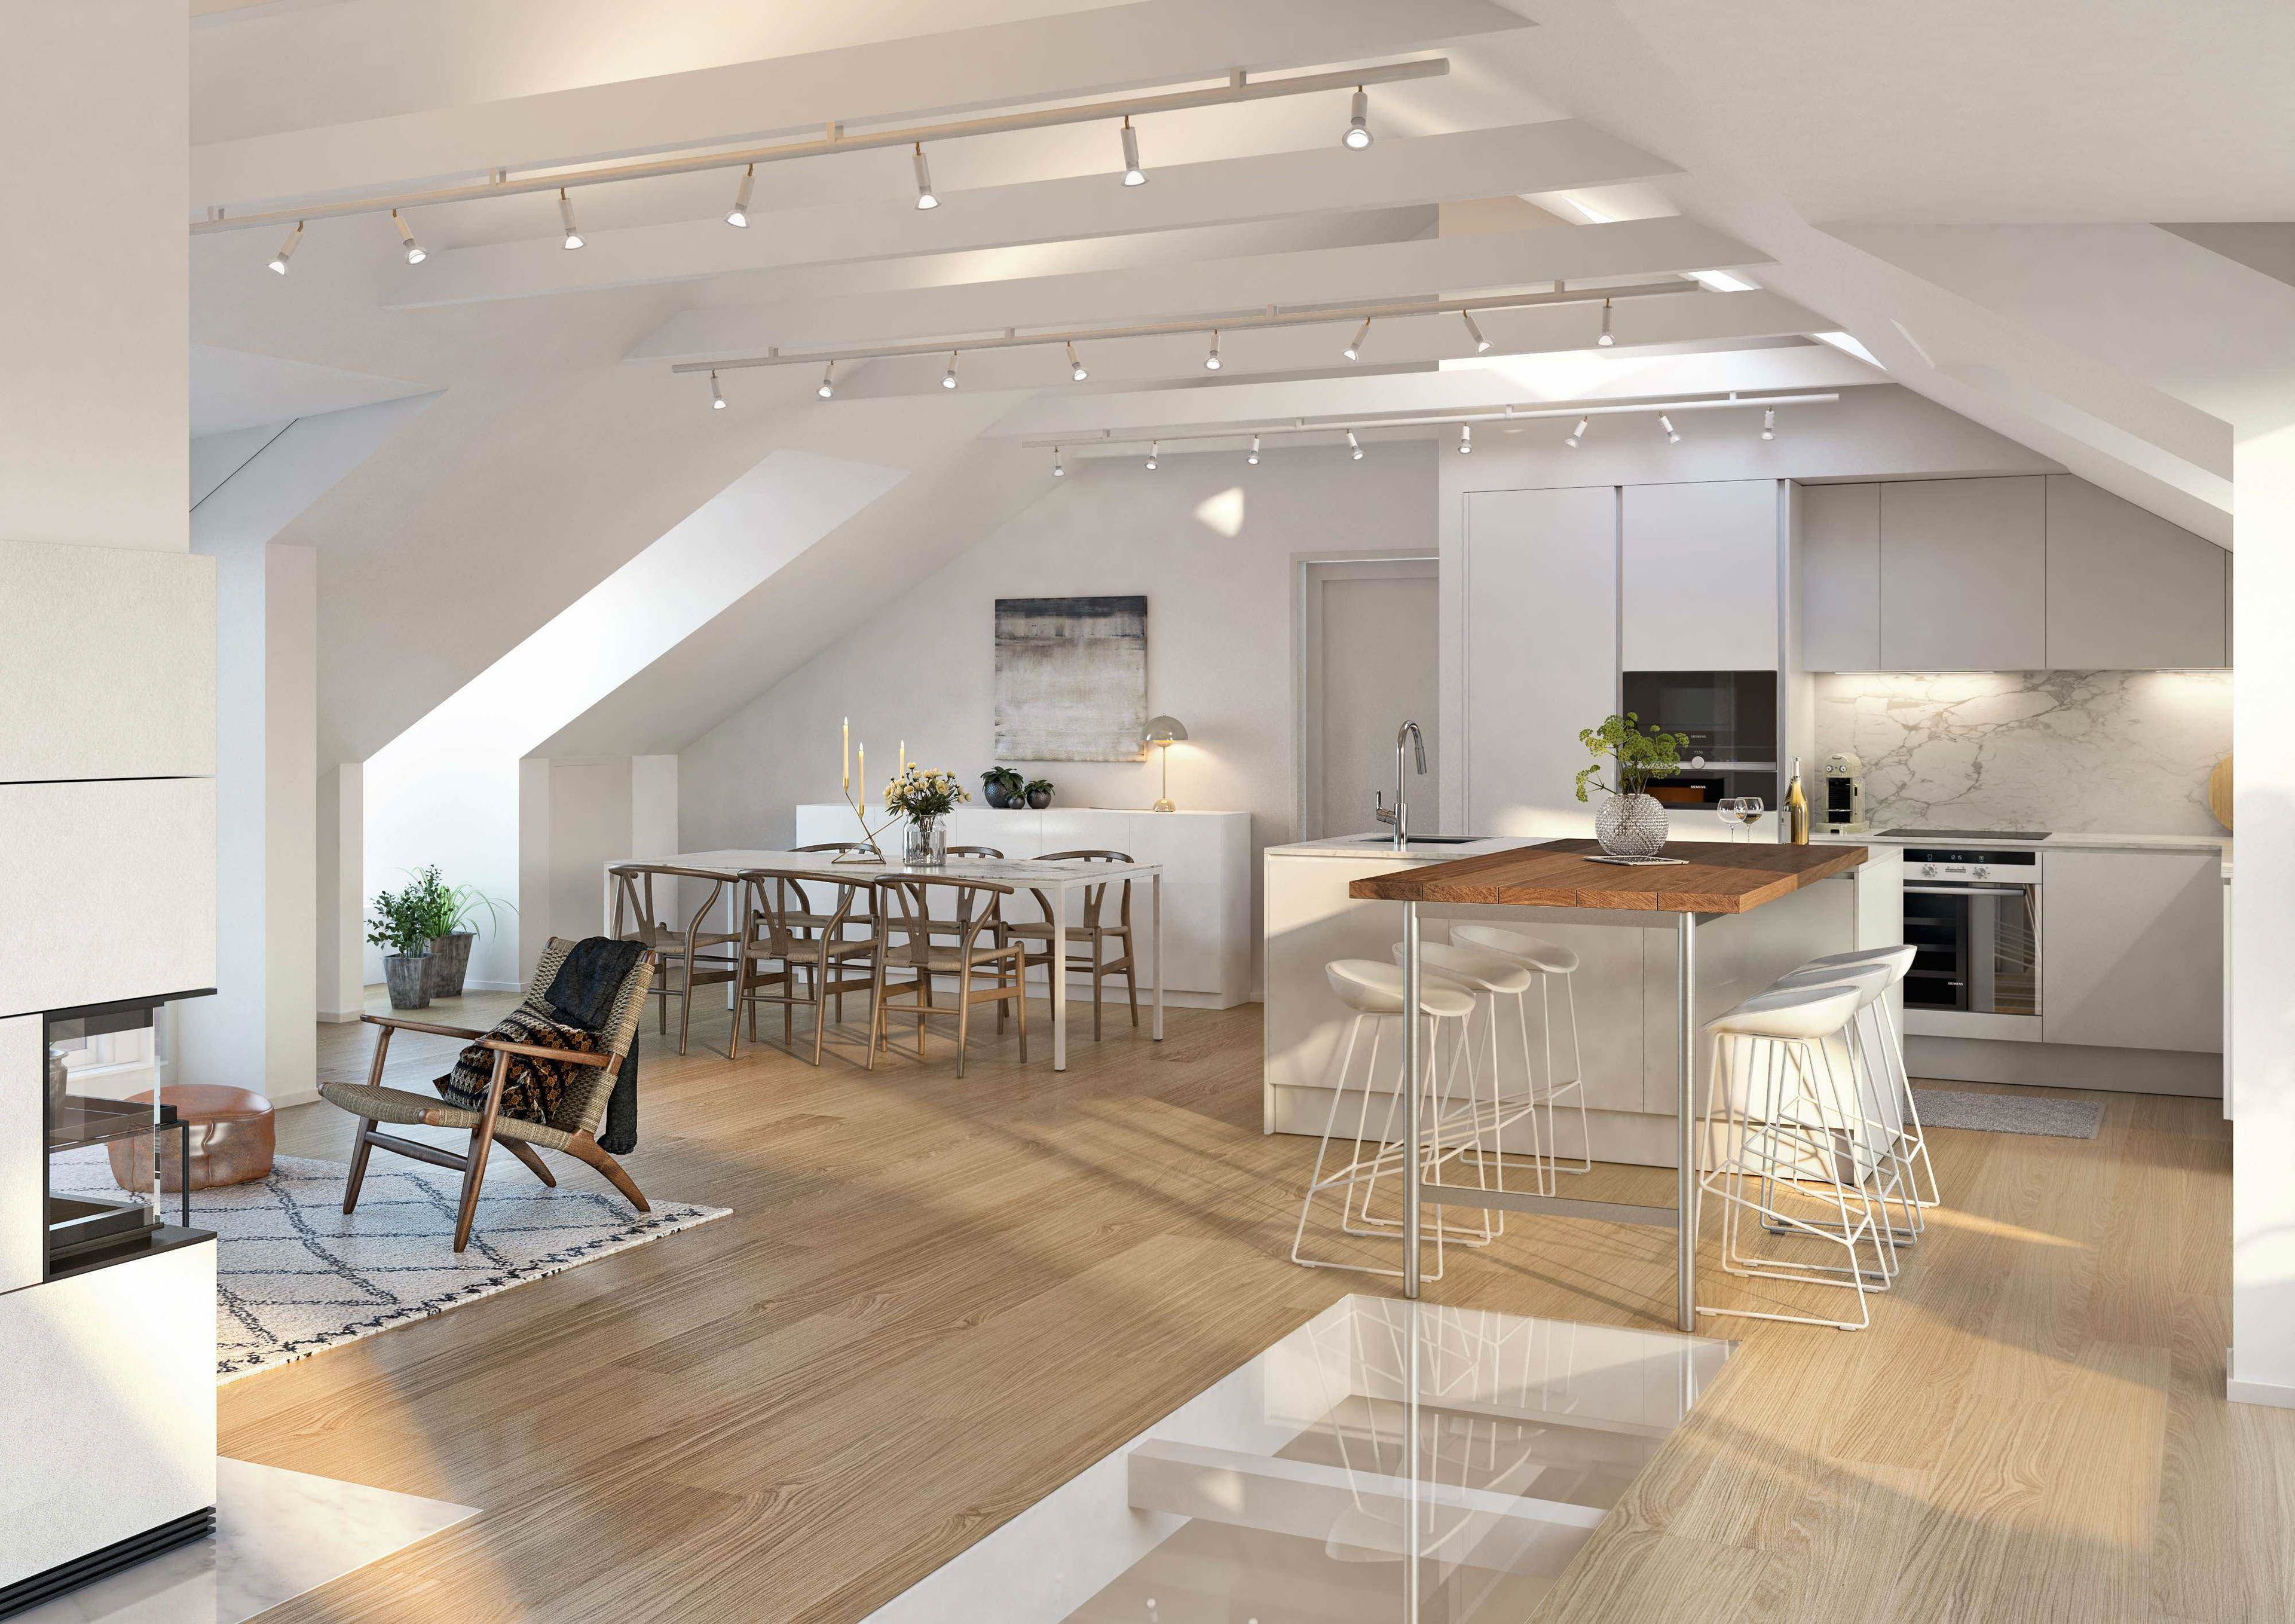 Name NLGClient //Description Interior Rendering for a